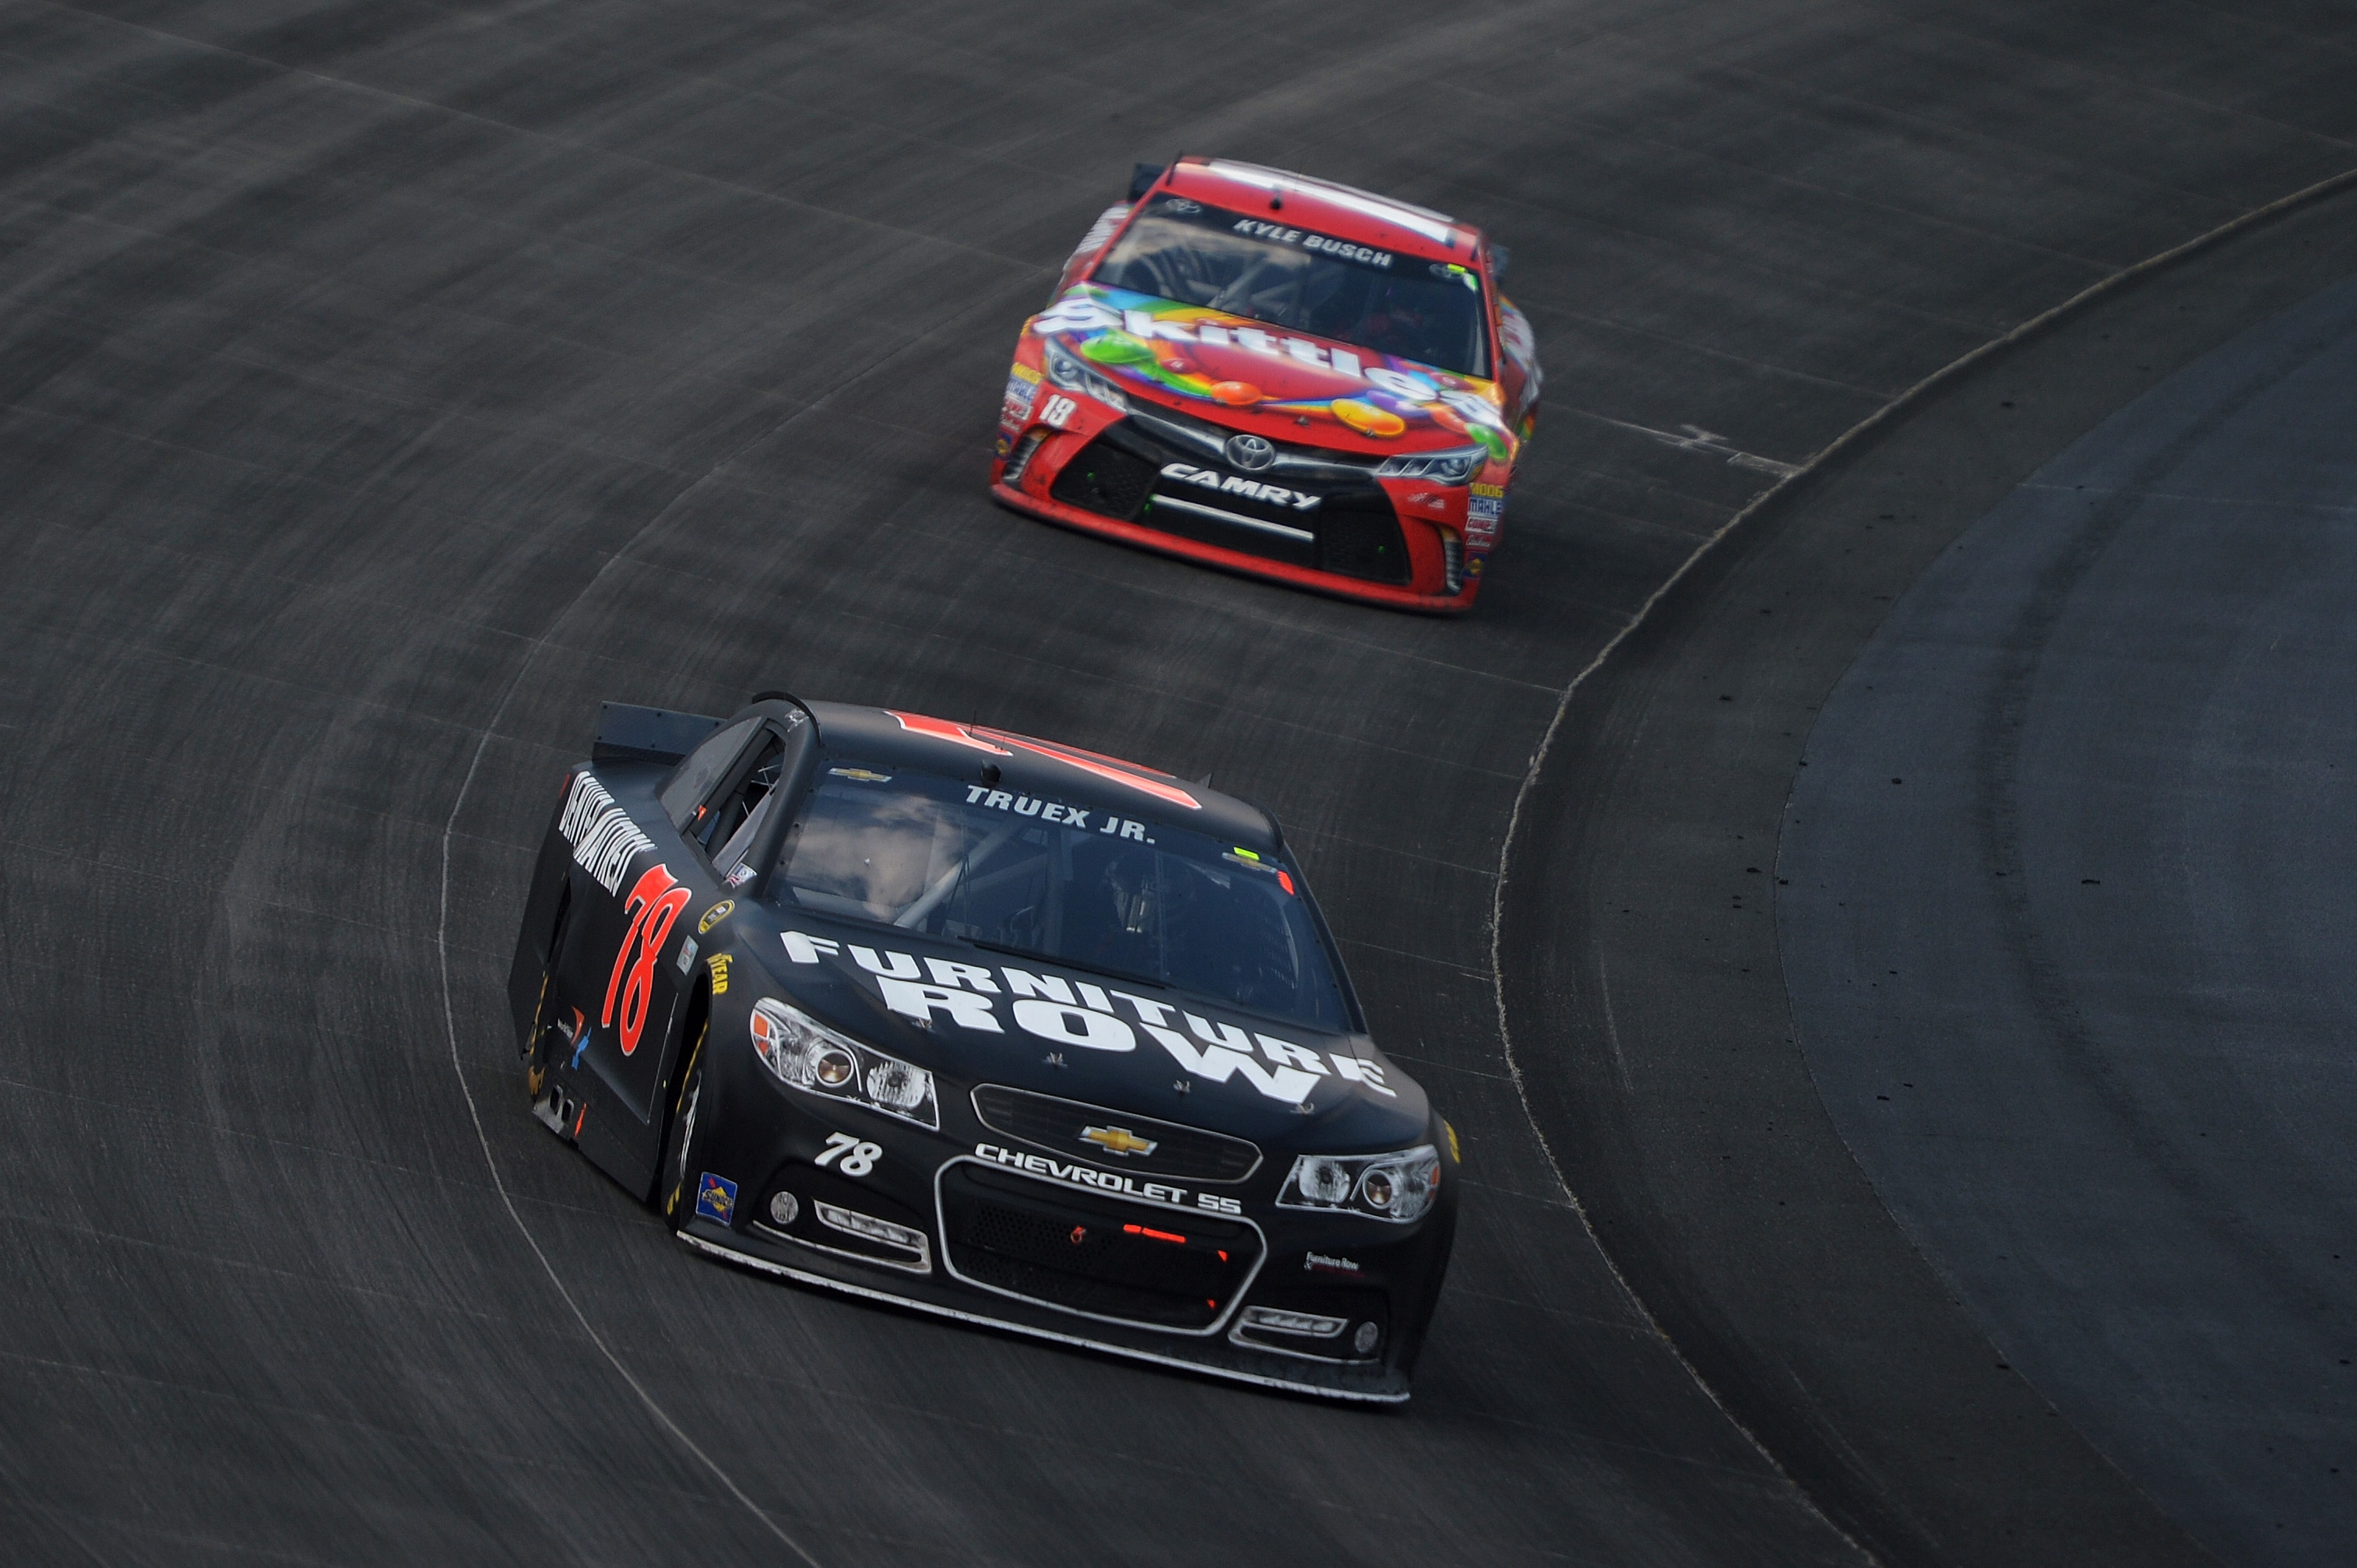 Martin Truex Jr., driver of the #78 Furniture Row/Visser Precision Chevrolet, leads Kyle Busch, driver of the #18 Skittles Toyota, during the NASCAR Sprint Cup Series FedEx 400 Benefiting Autism Speaks at Dover International Speedway on May 31, 2015 in Dover, Delaware. (Photo by Drew Hallowell/Getty Images)